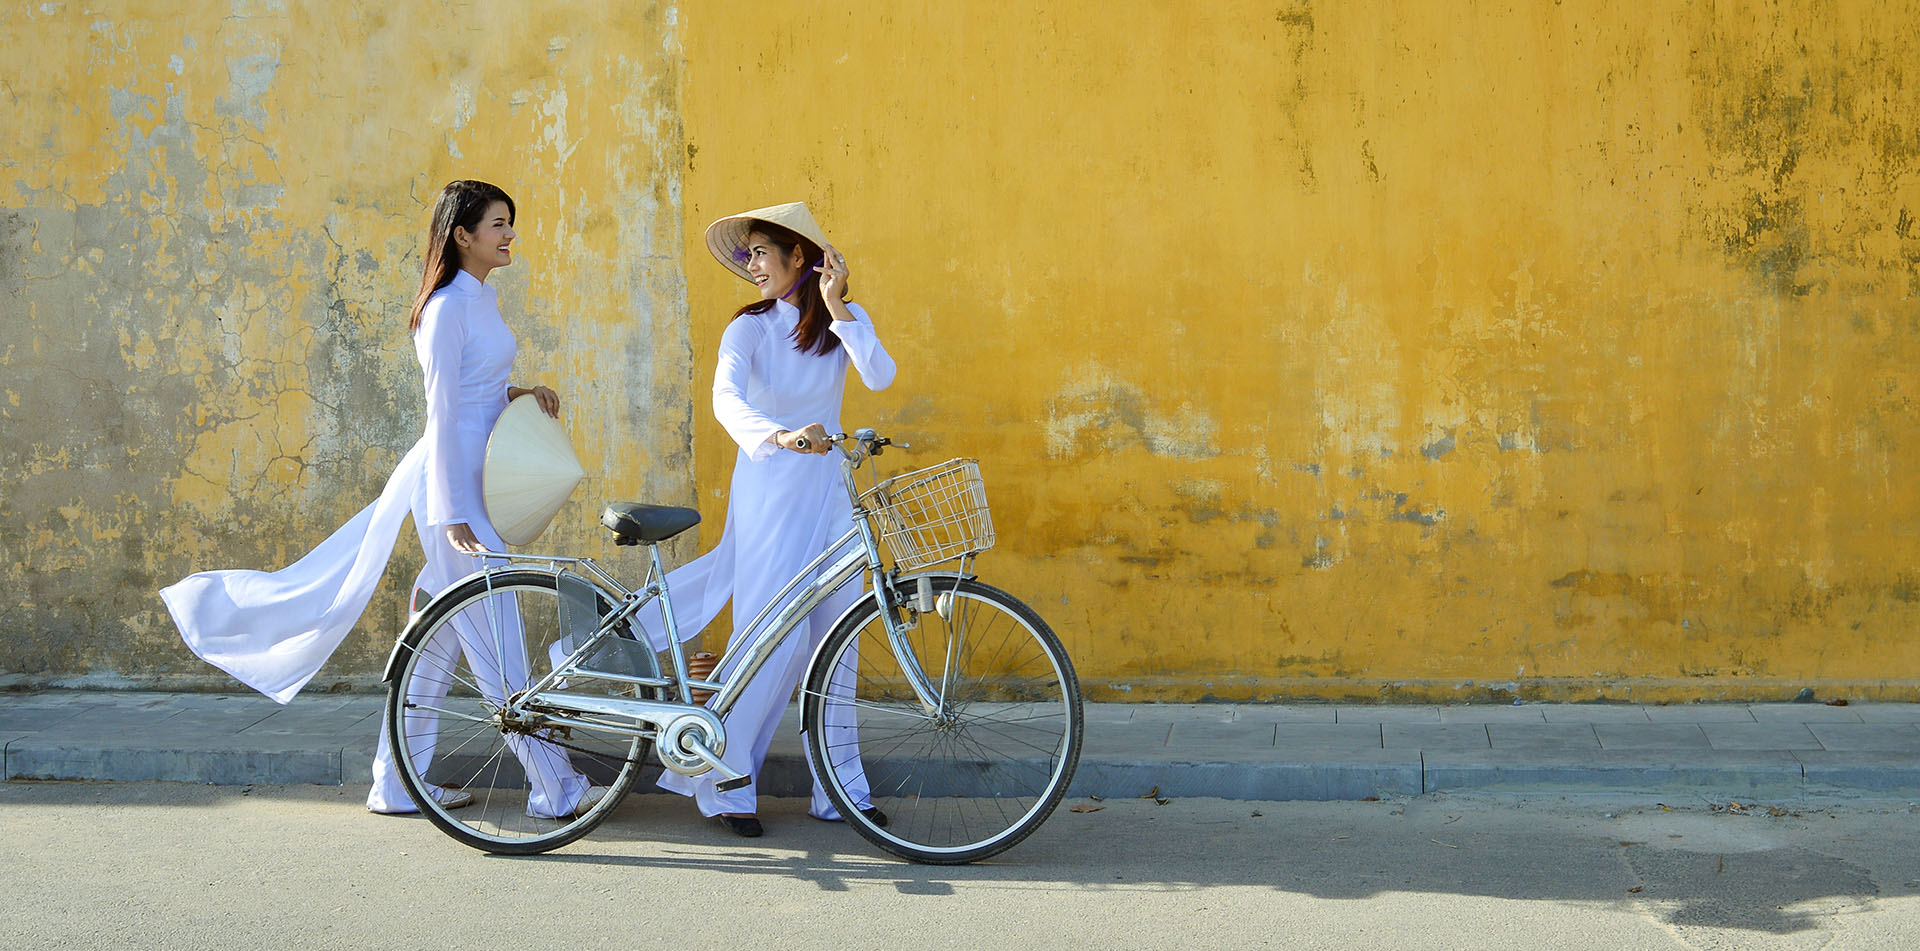 Asia Vietnam local women wearing white walking with a bike on Hoi An street - luxury vacation destinations